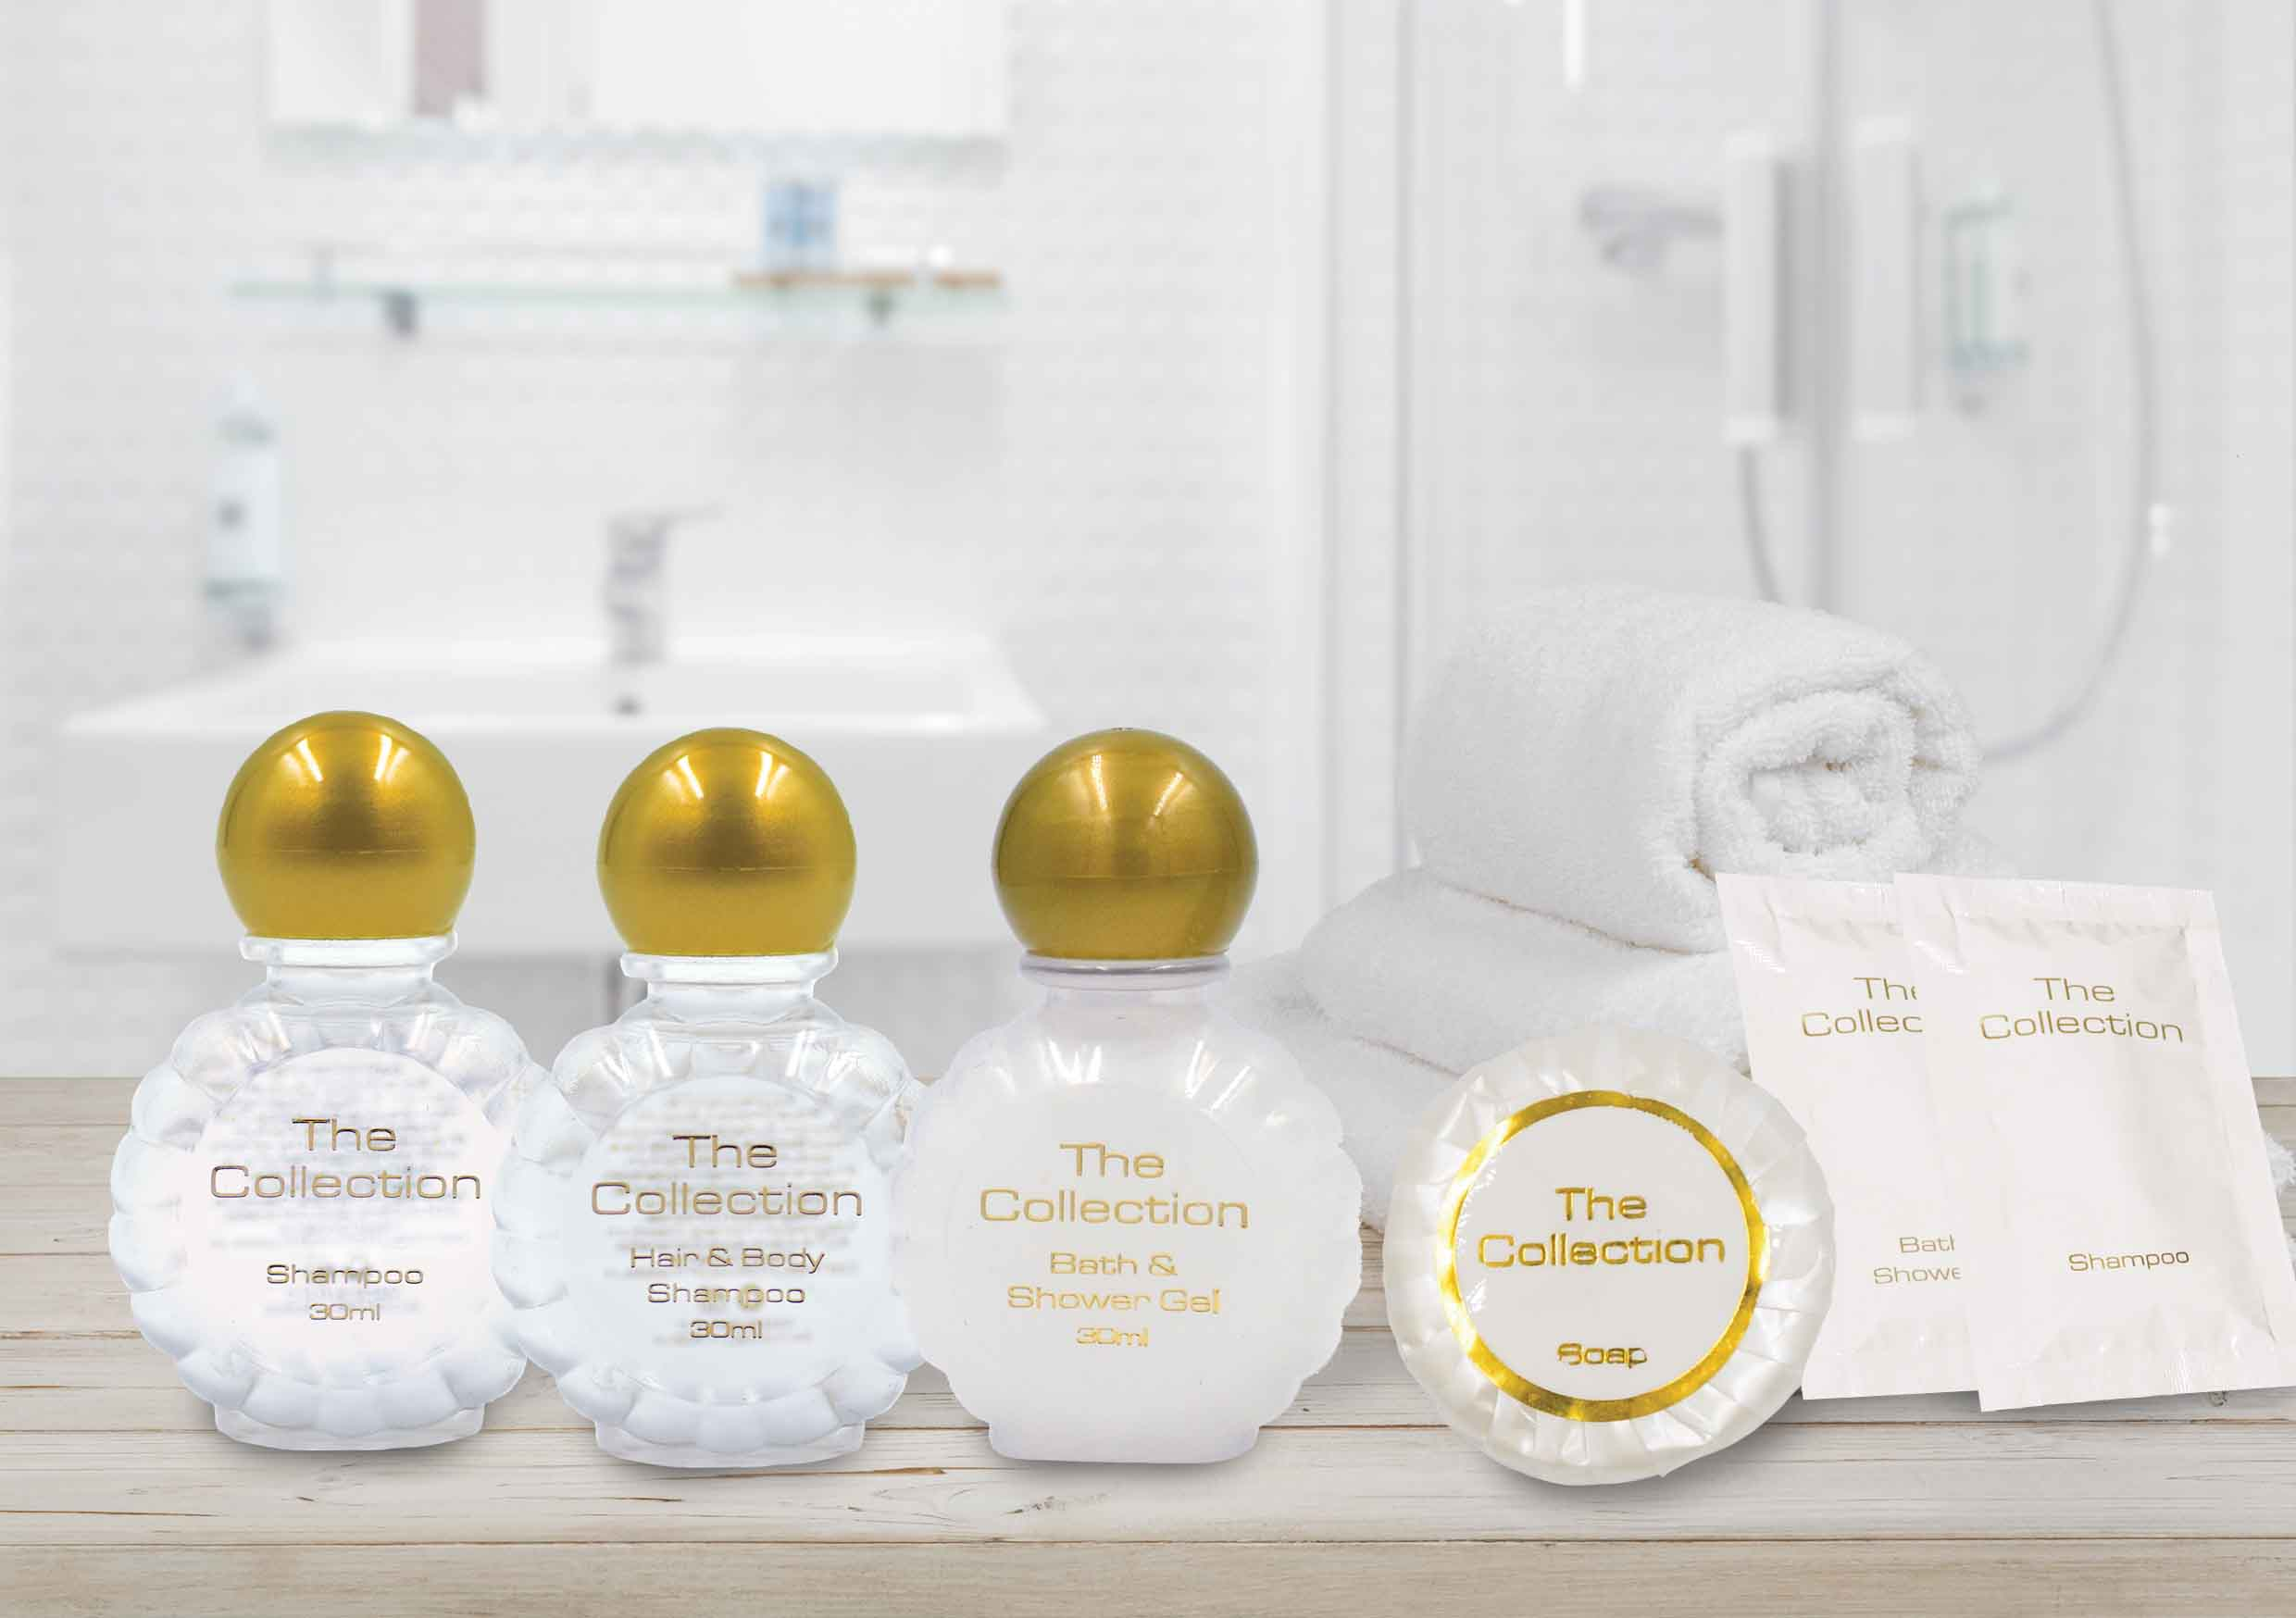 The Collection: White & Gold Toiletries